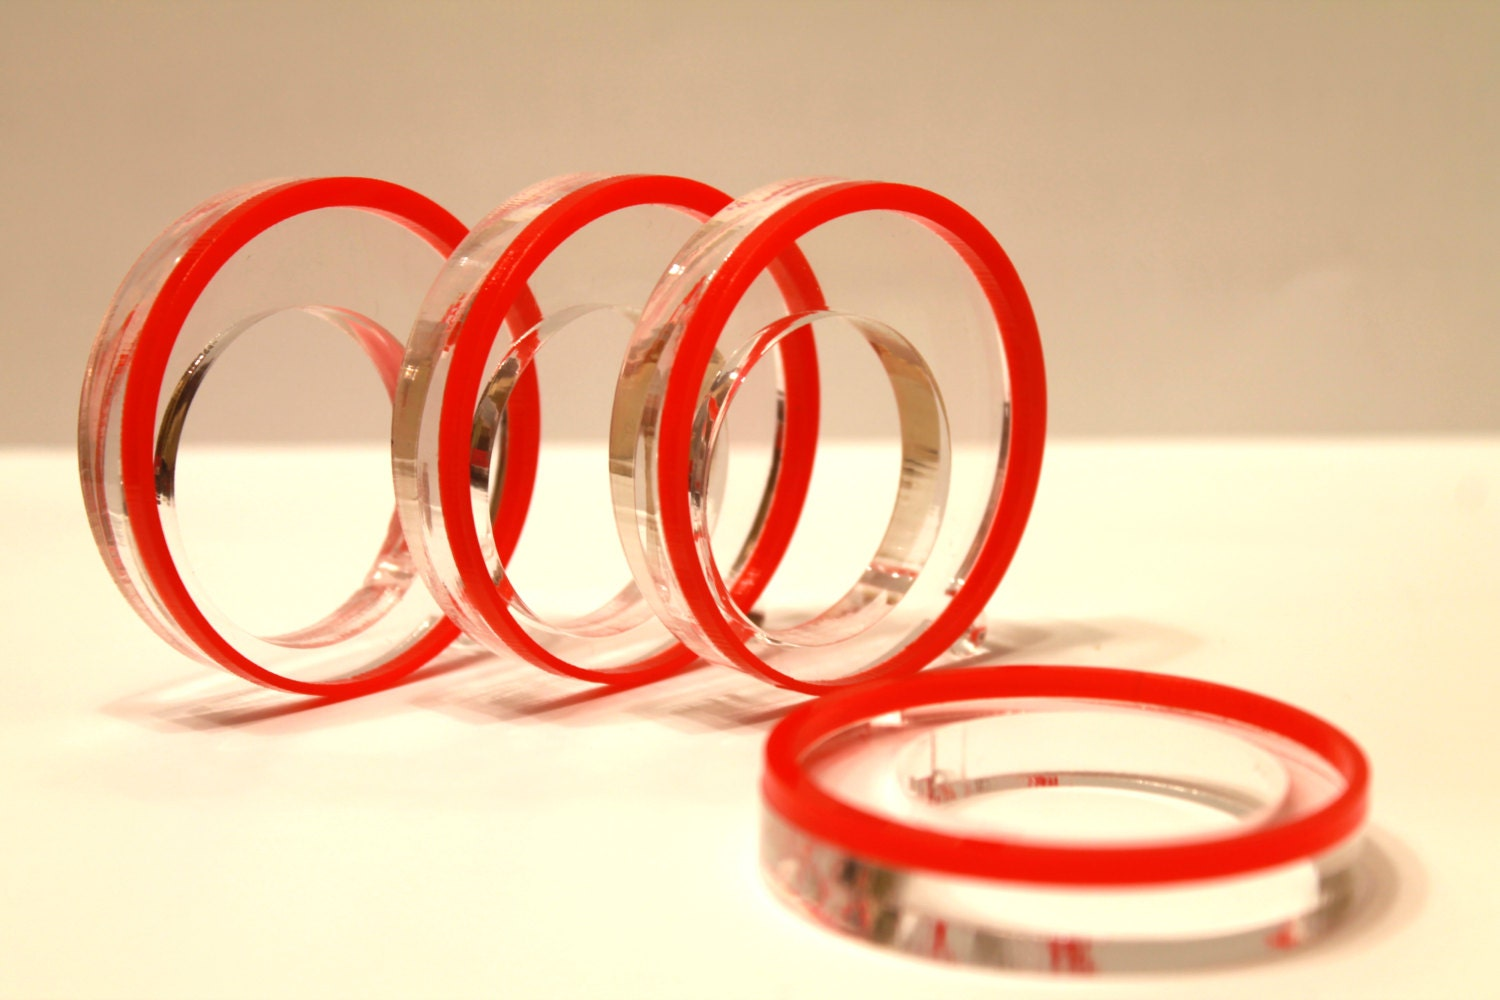 Red Napkin Rings Dinner Party Centerpiece Wedding Napkin Ring Holders Table Decor Circle Napkin Rings Mother S Day Gift Table Decorations